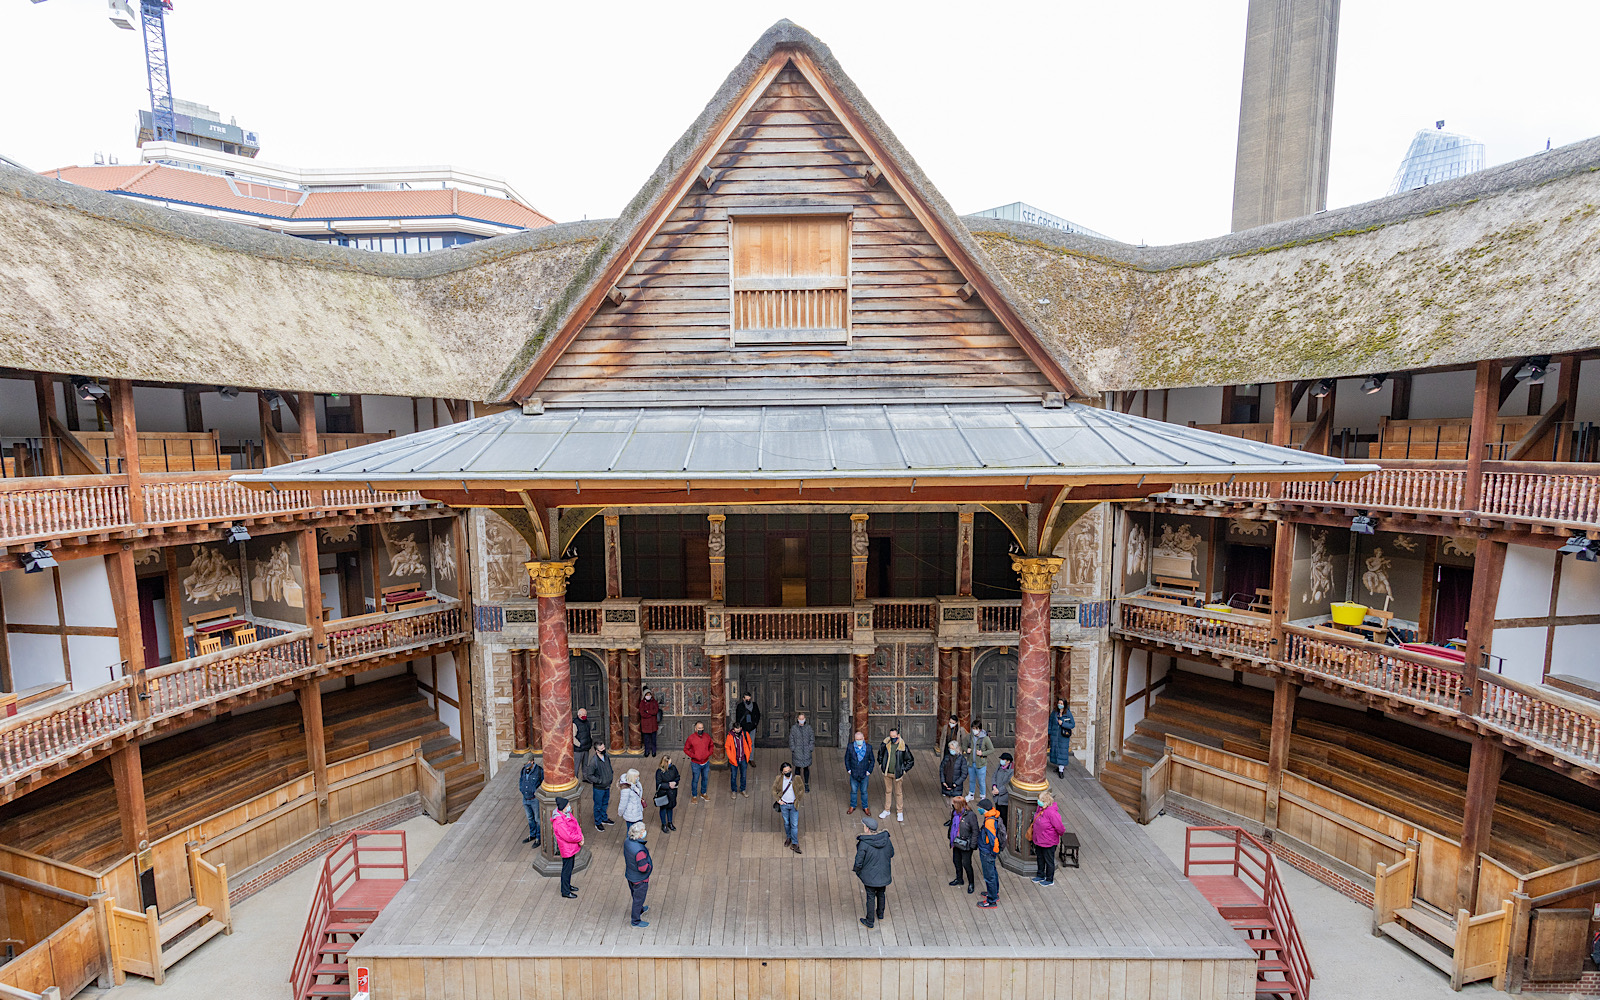 The Globe Theatre stage has a tall triangle roof and is held up by intricately decorated pillars